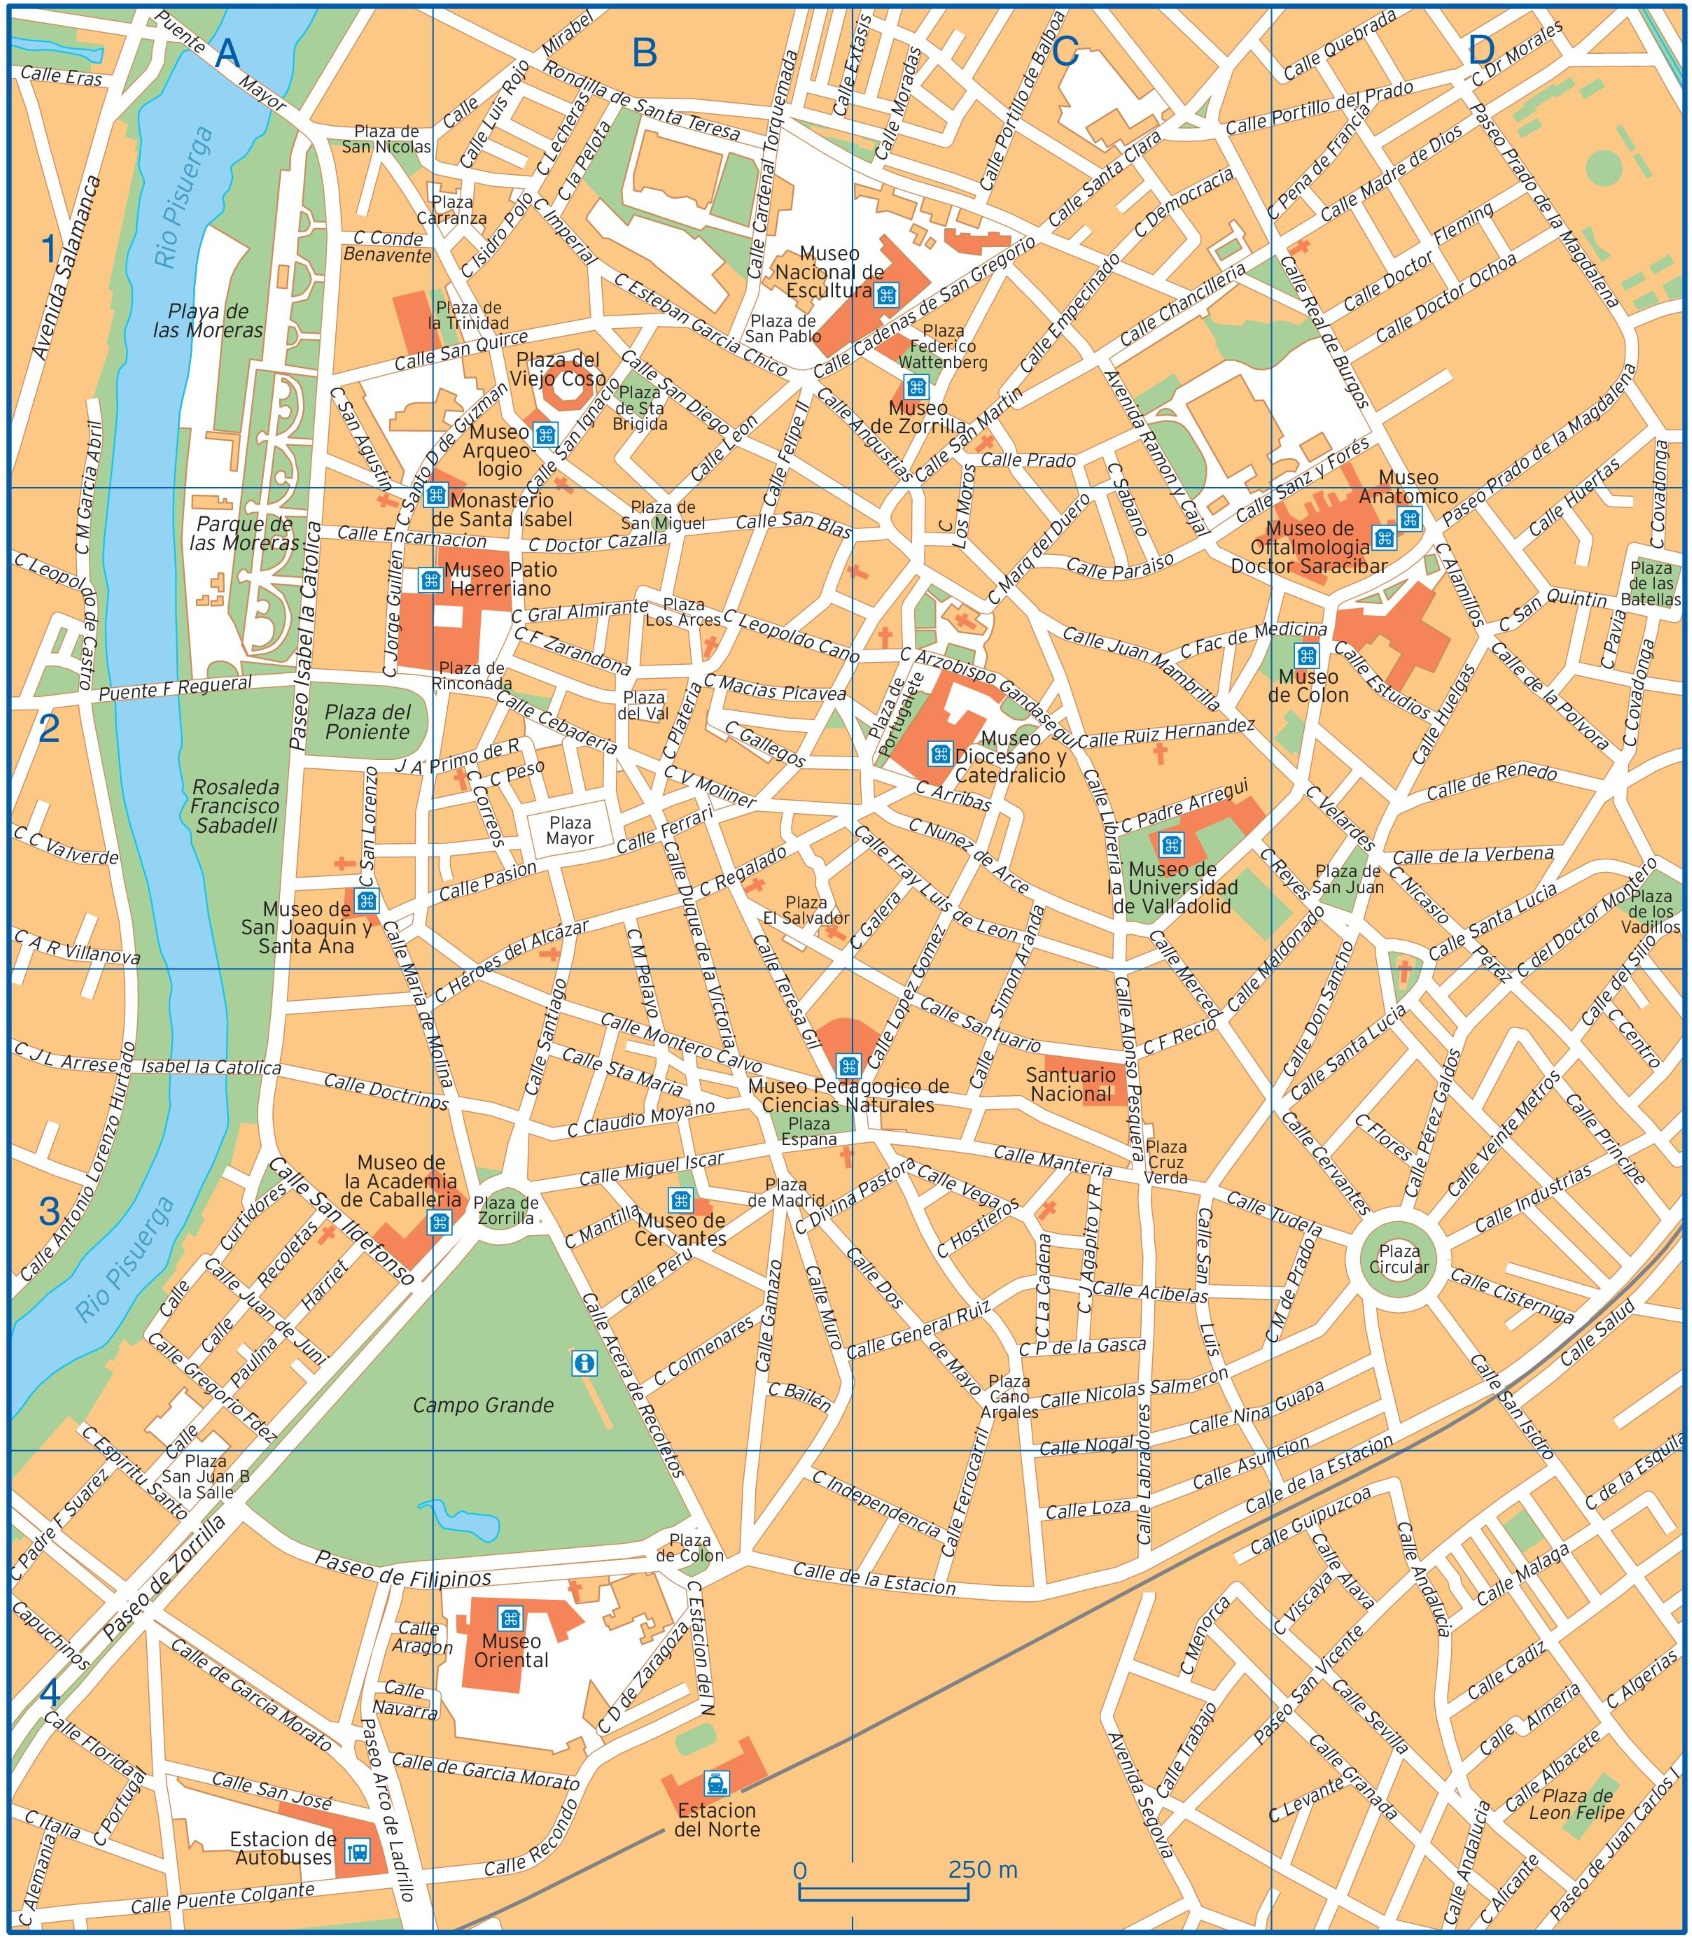 Map Of Spain Valladolid.Valladolid Maps Spain Maps Of Valladolid